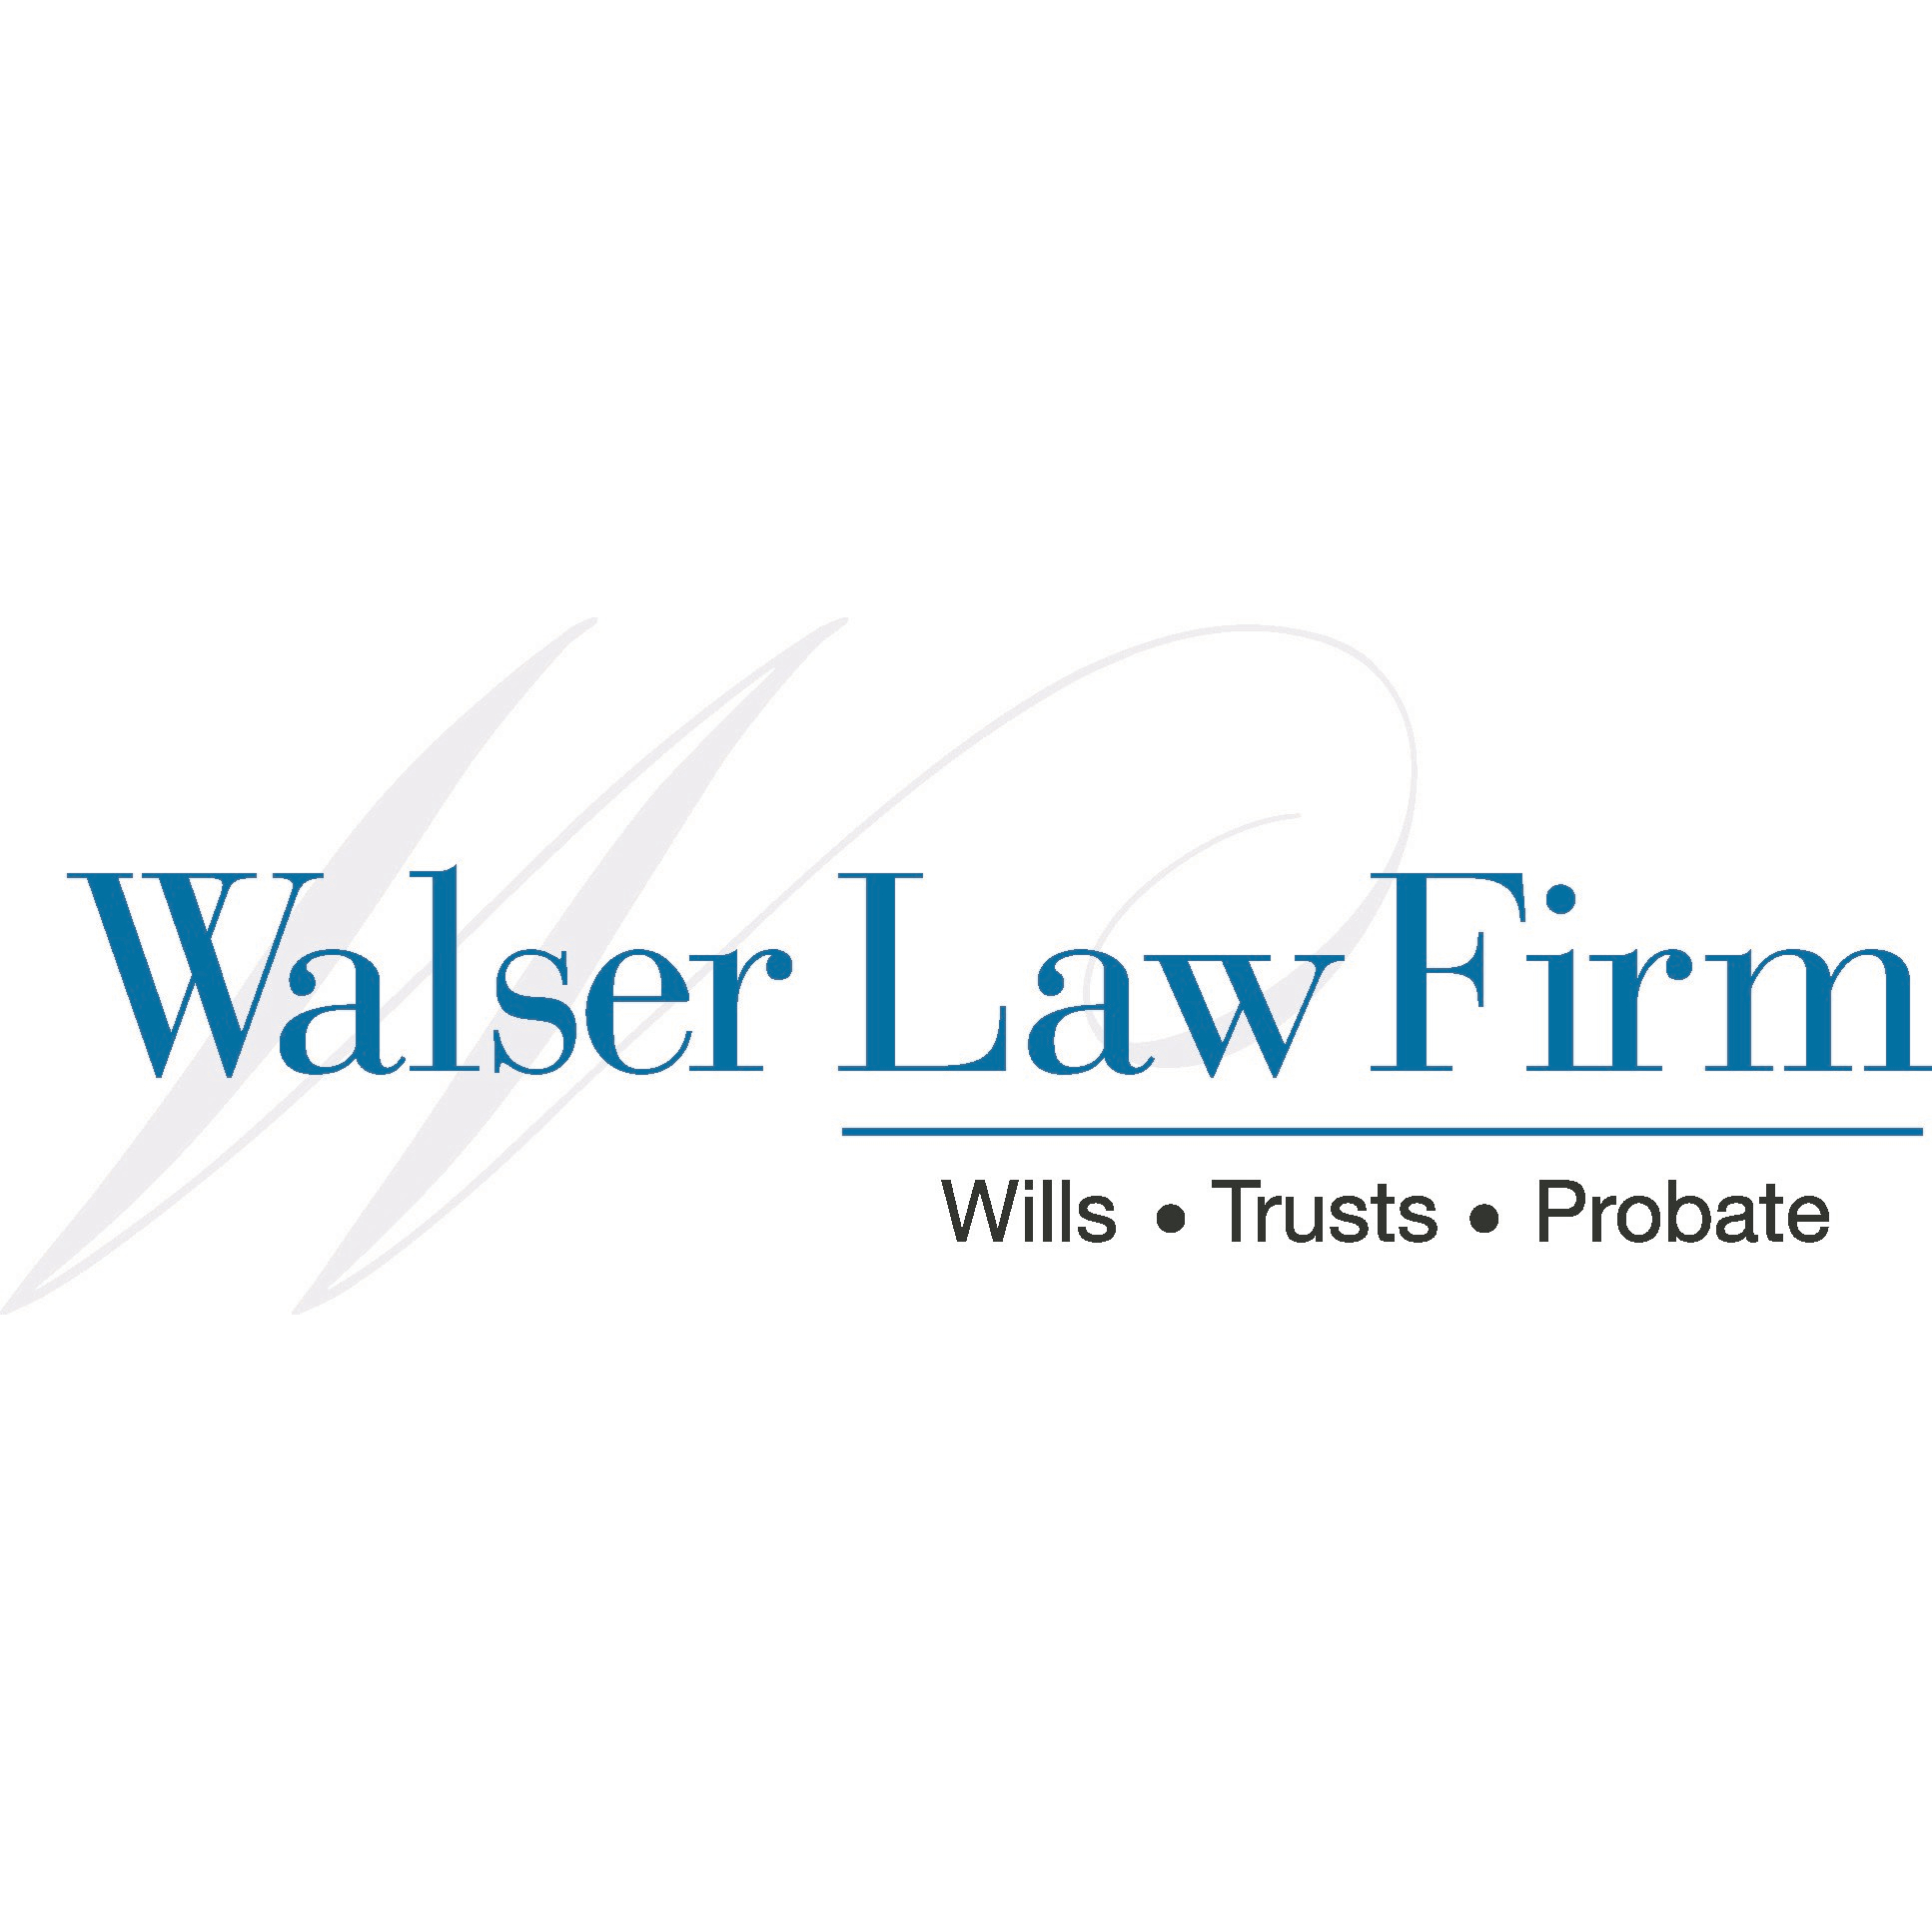 Walser Law Firm image 5